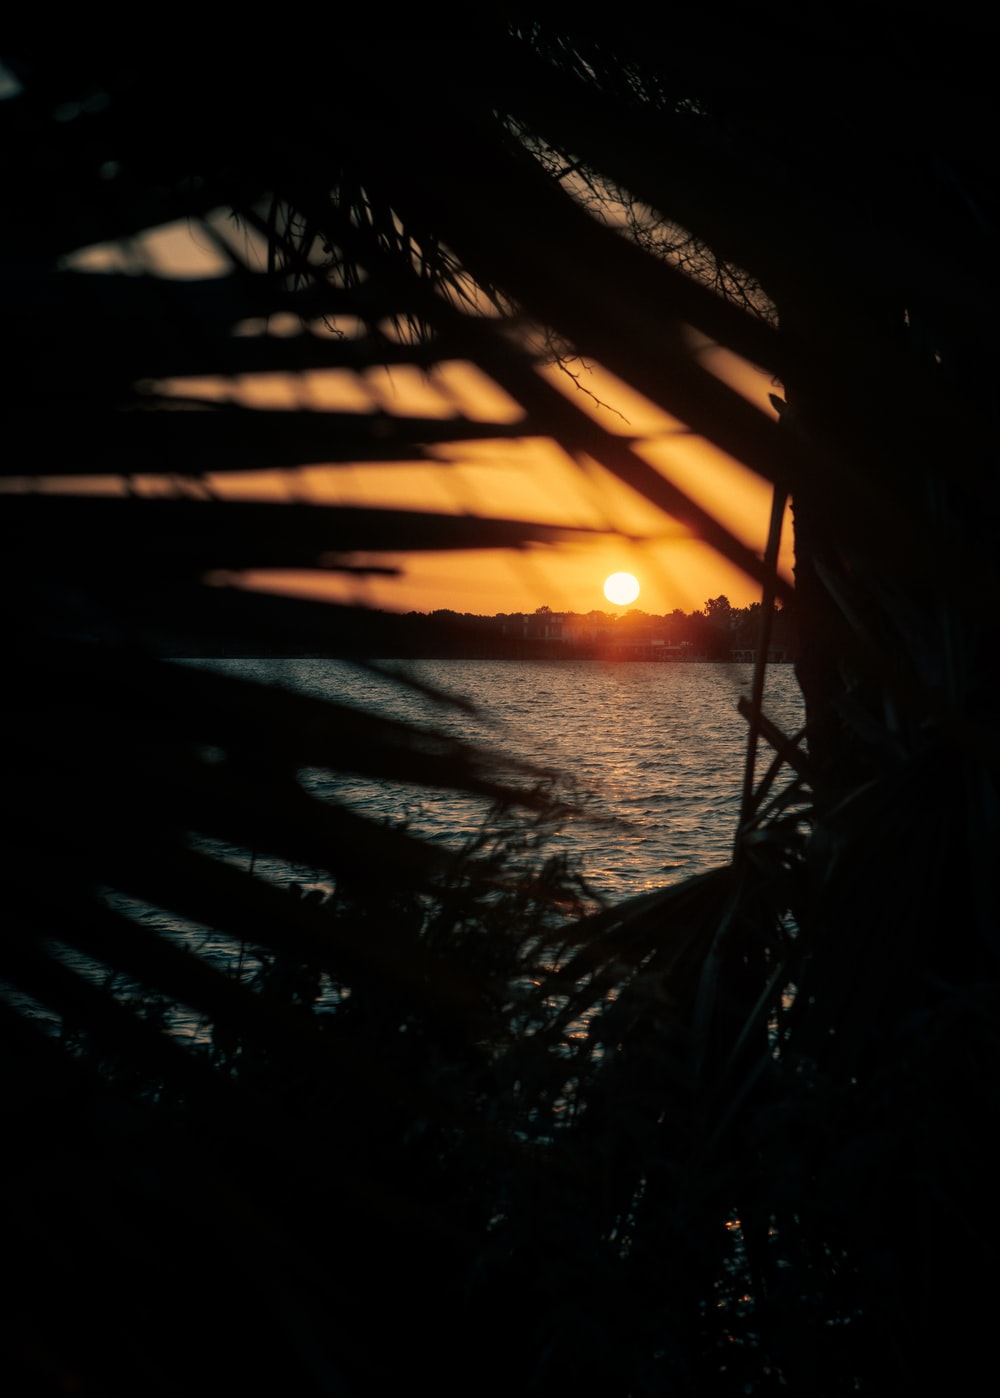 silhouette of plants near body of water during sunset